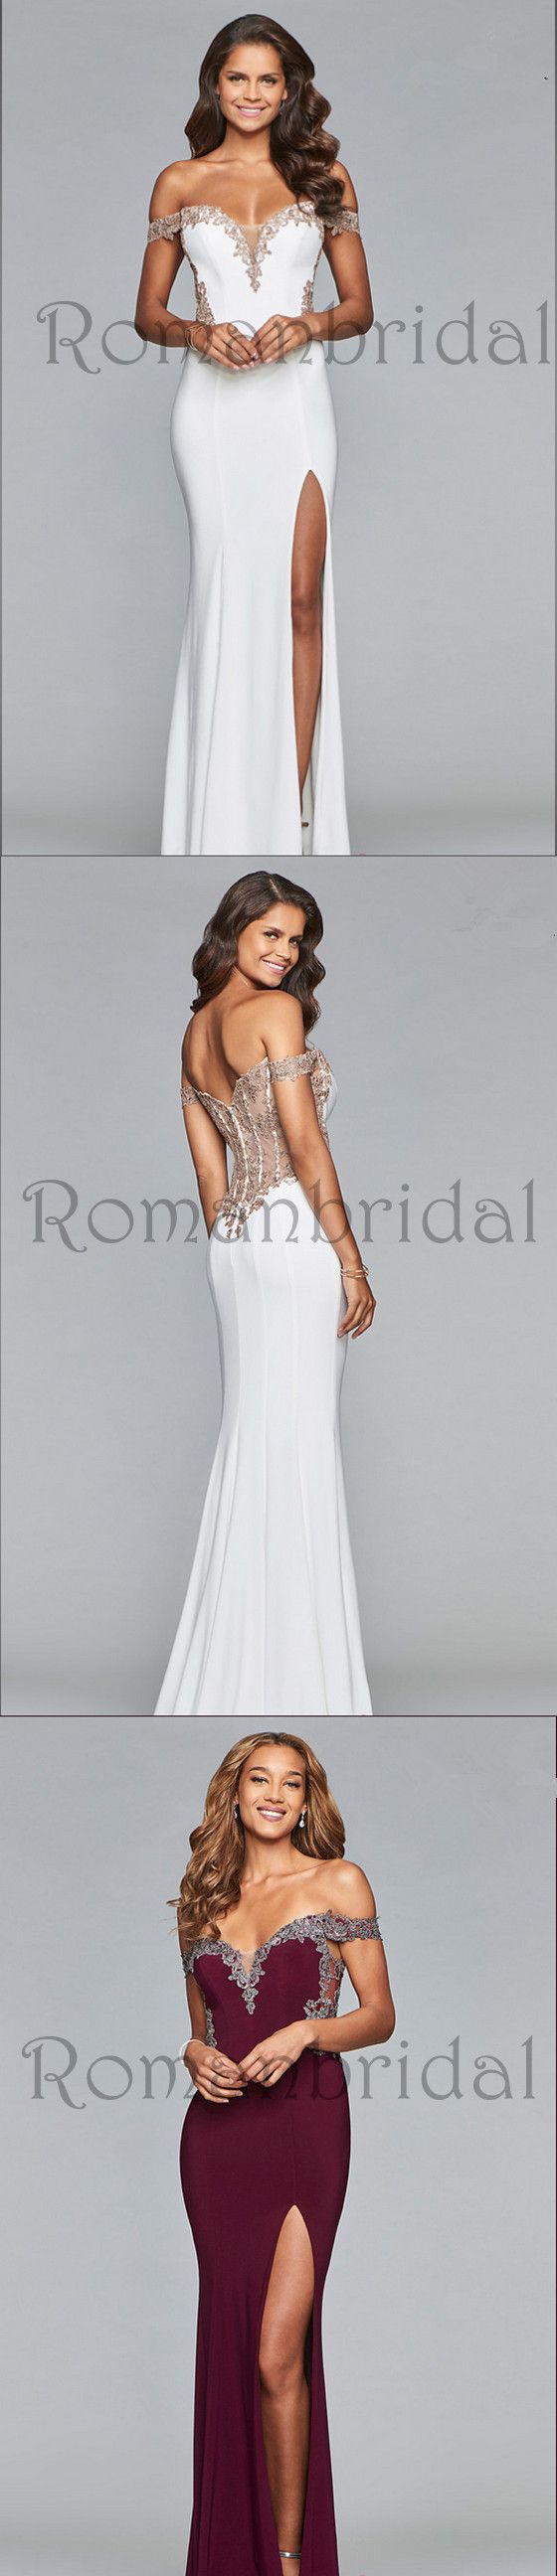 best prom dresses images on pinterest party wear dresses prom